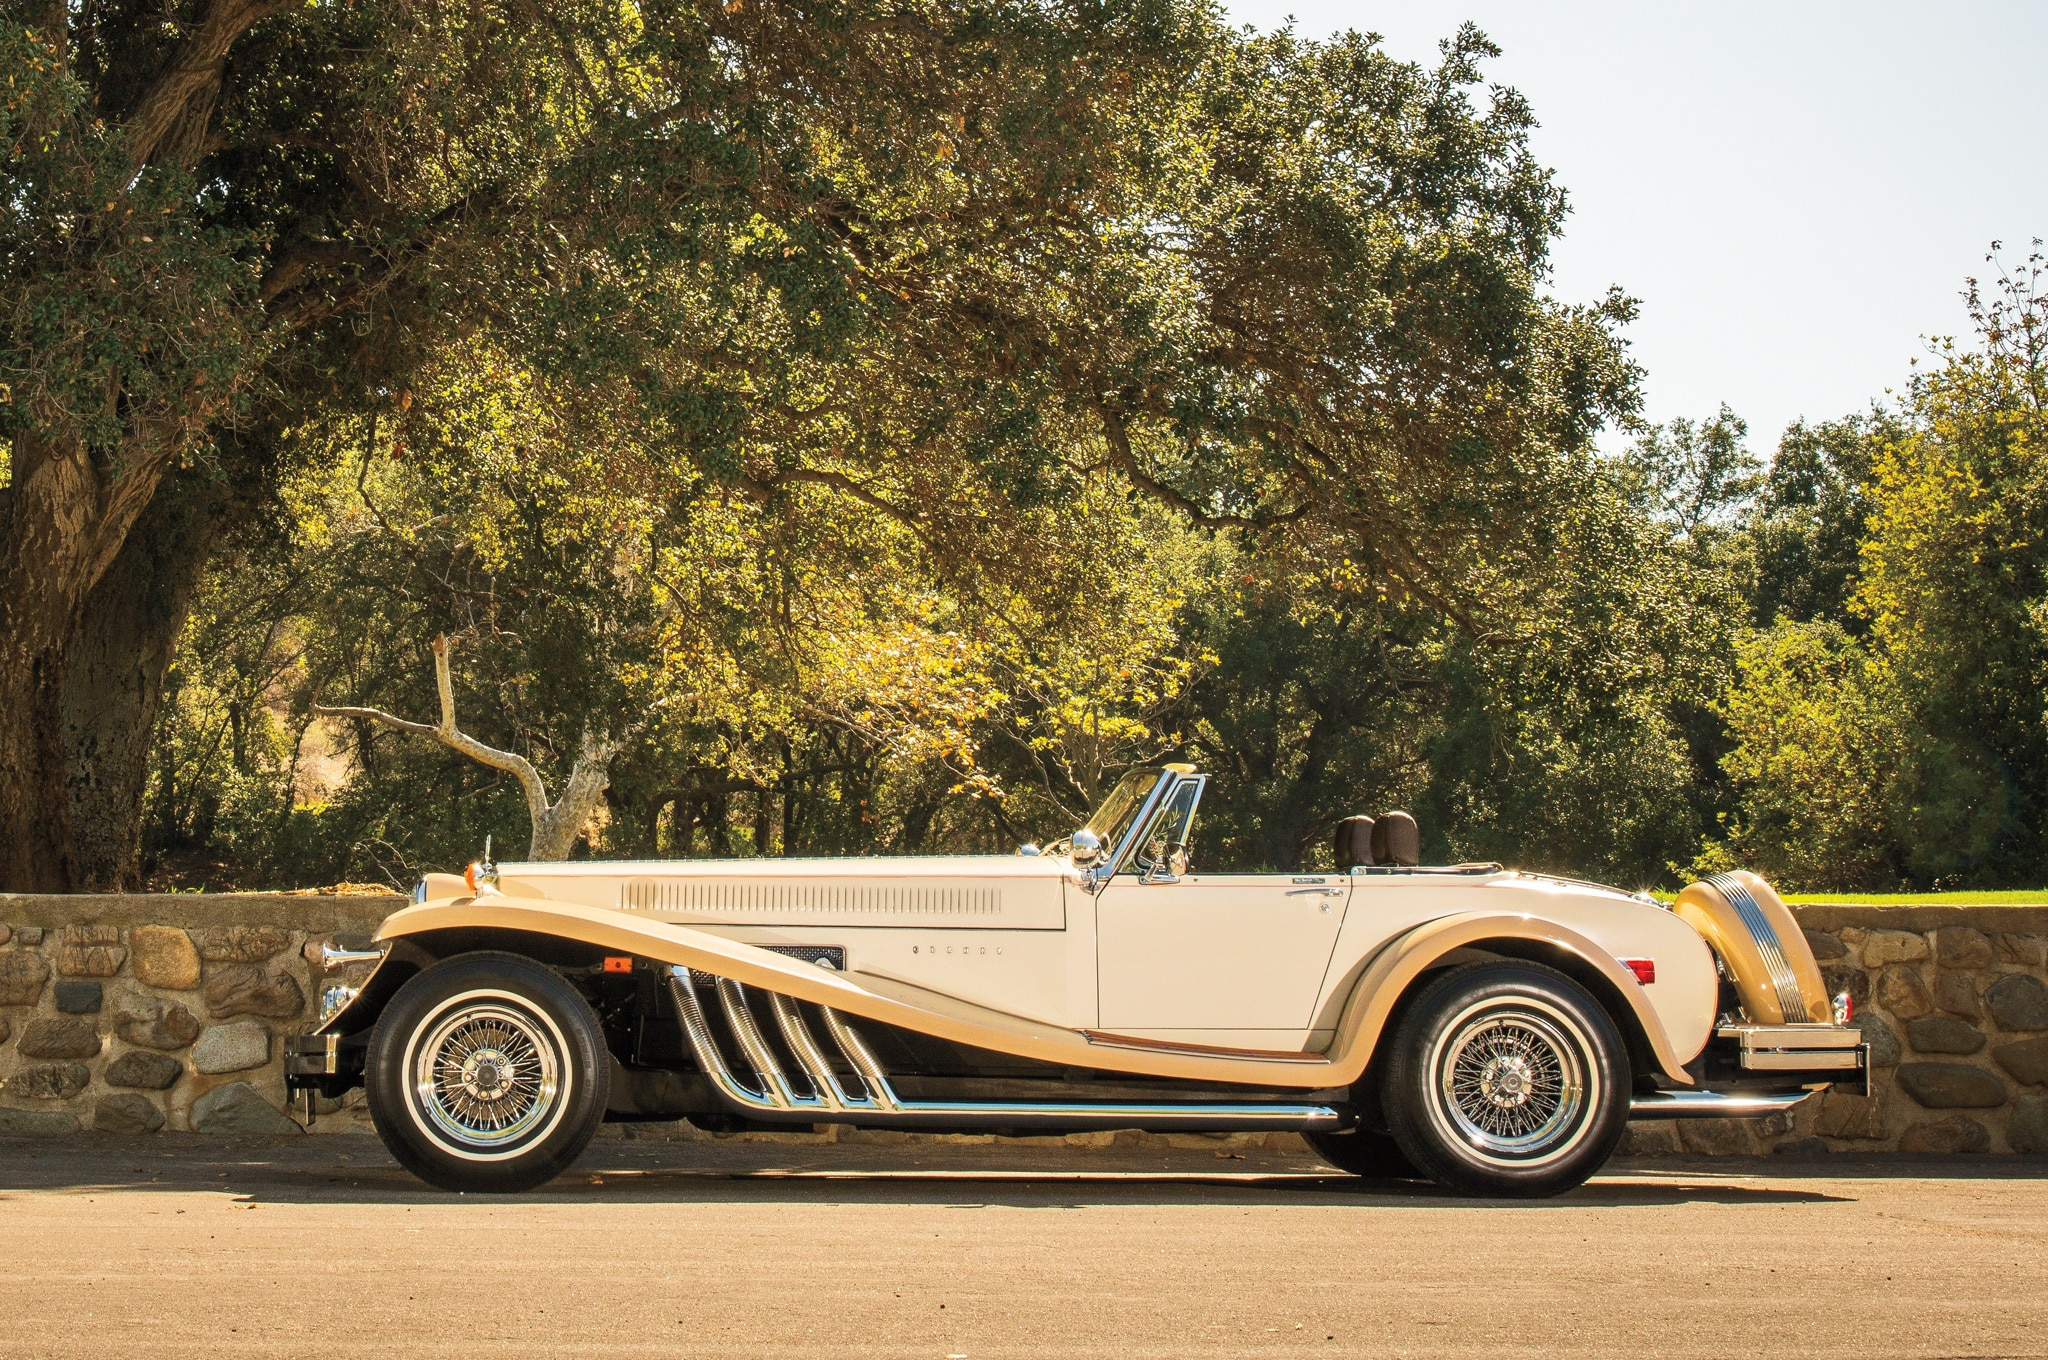 Standing on Their Own: Coachbuilt Classics Remain Polarizing Today